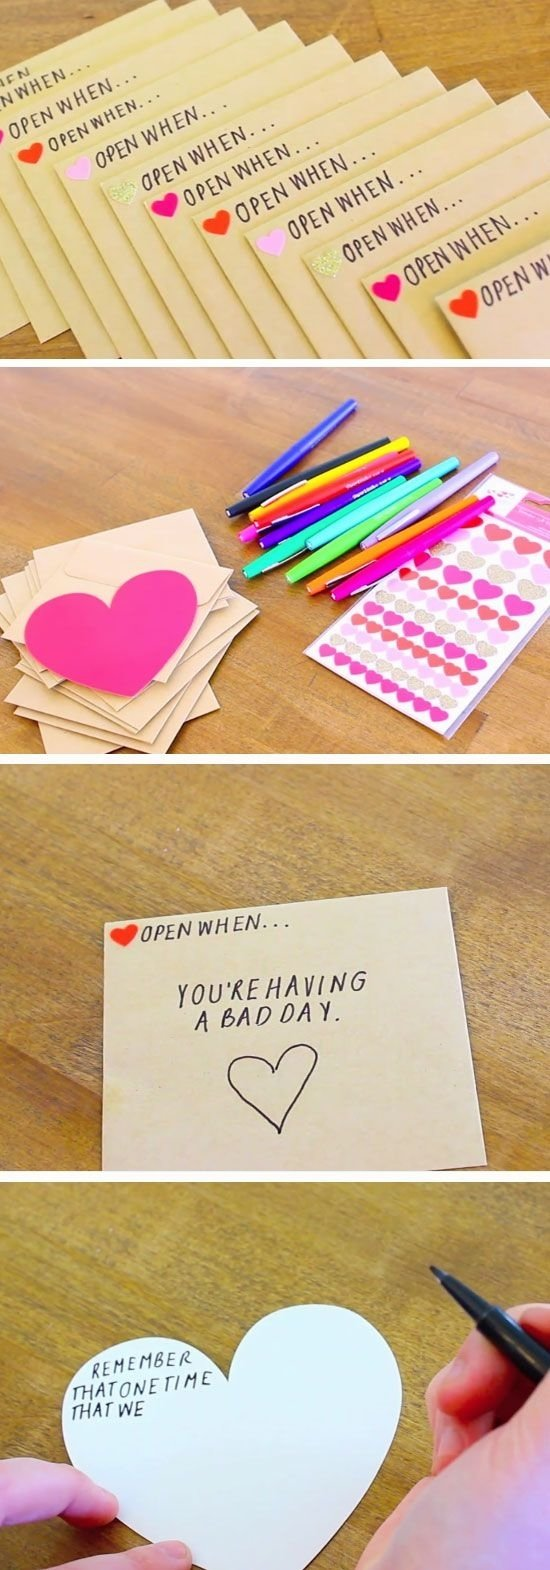 10 Nice Diy Gift Ideas For Boyfriend 45 awesome diy gifts for boyfriend with lots of tutorials 2017 4